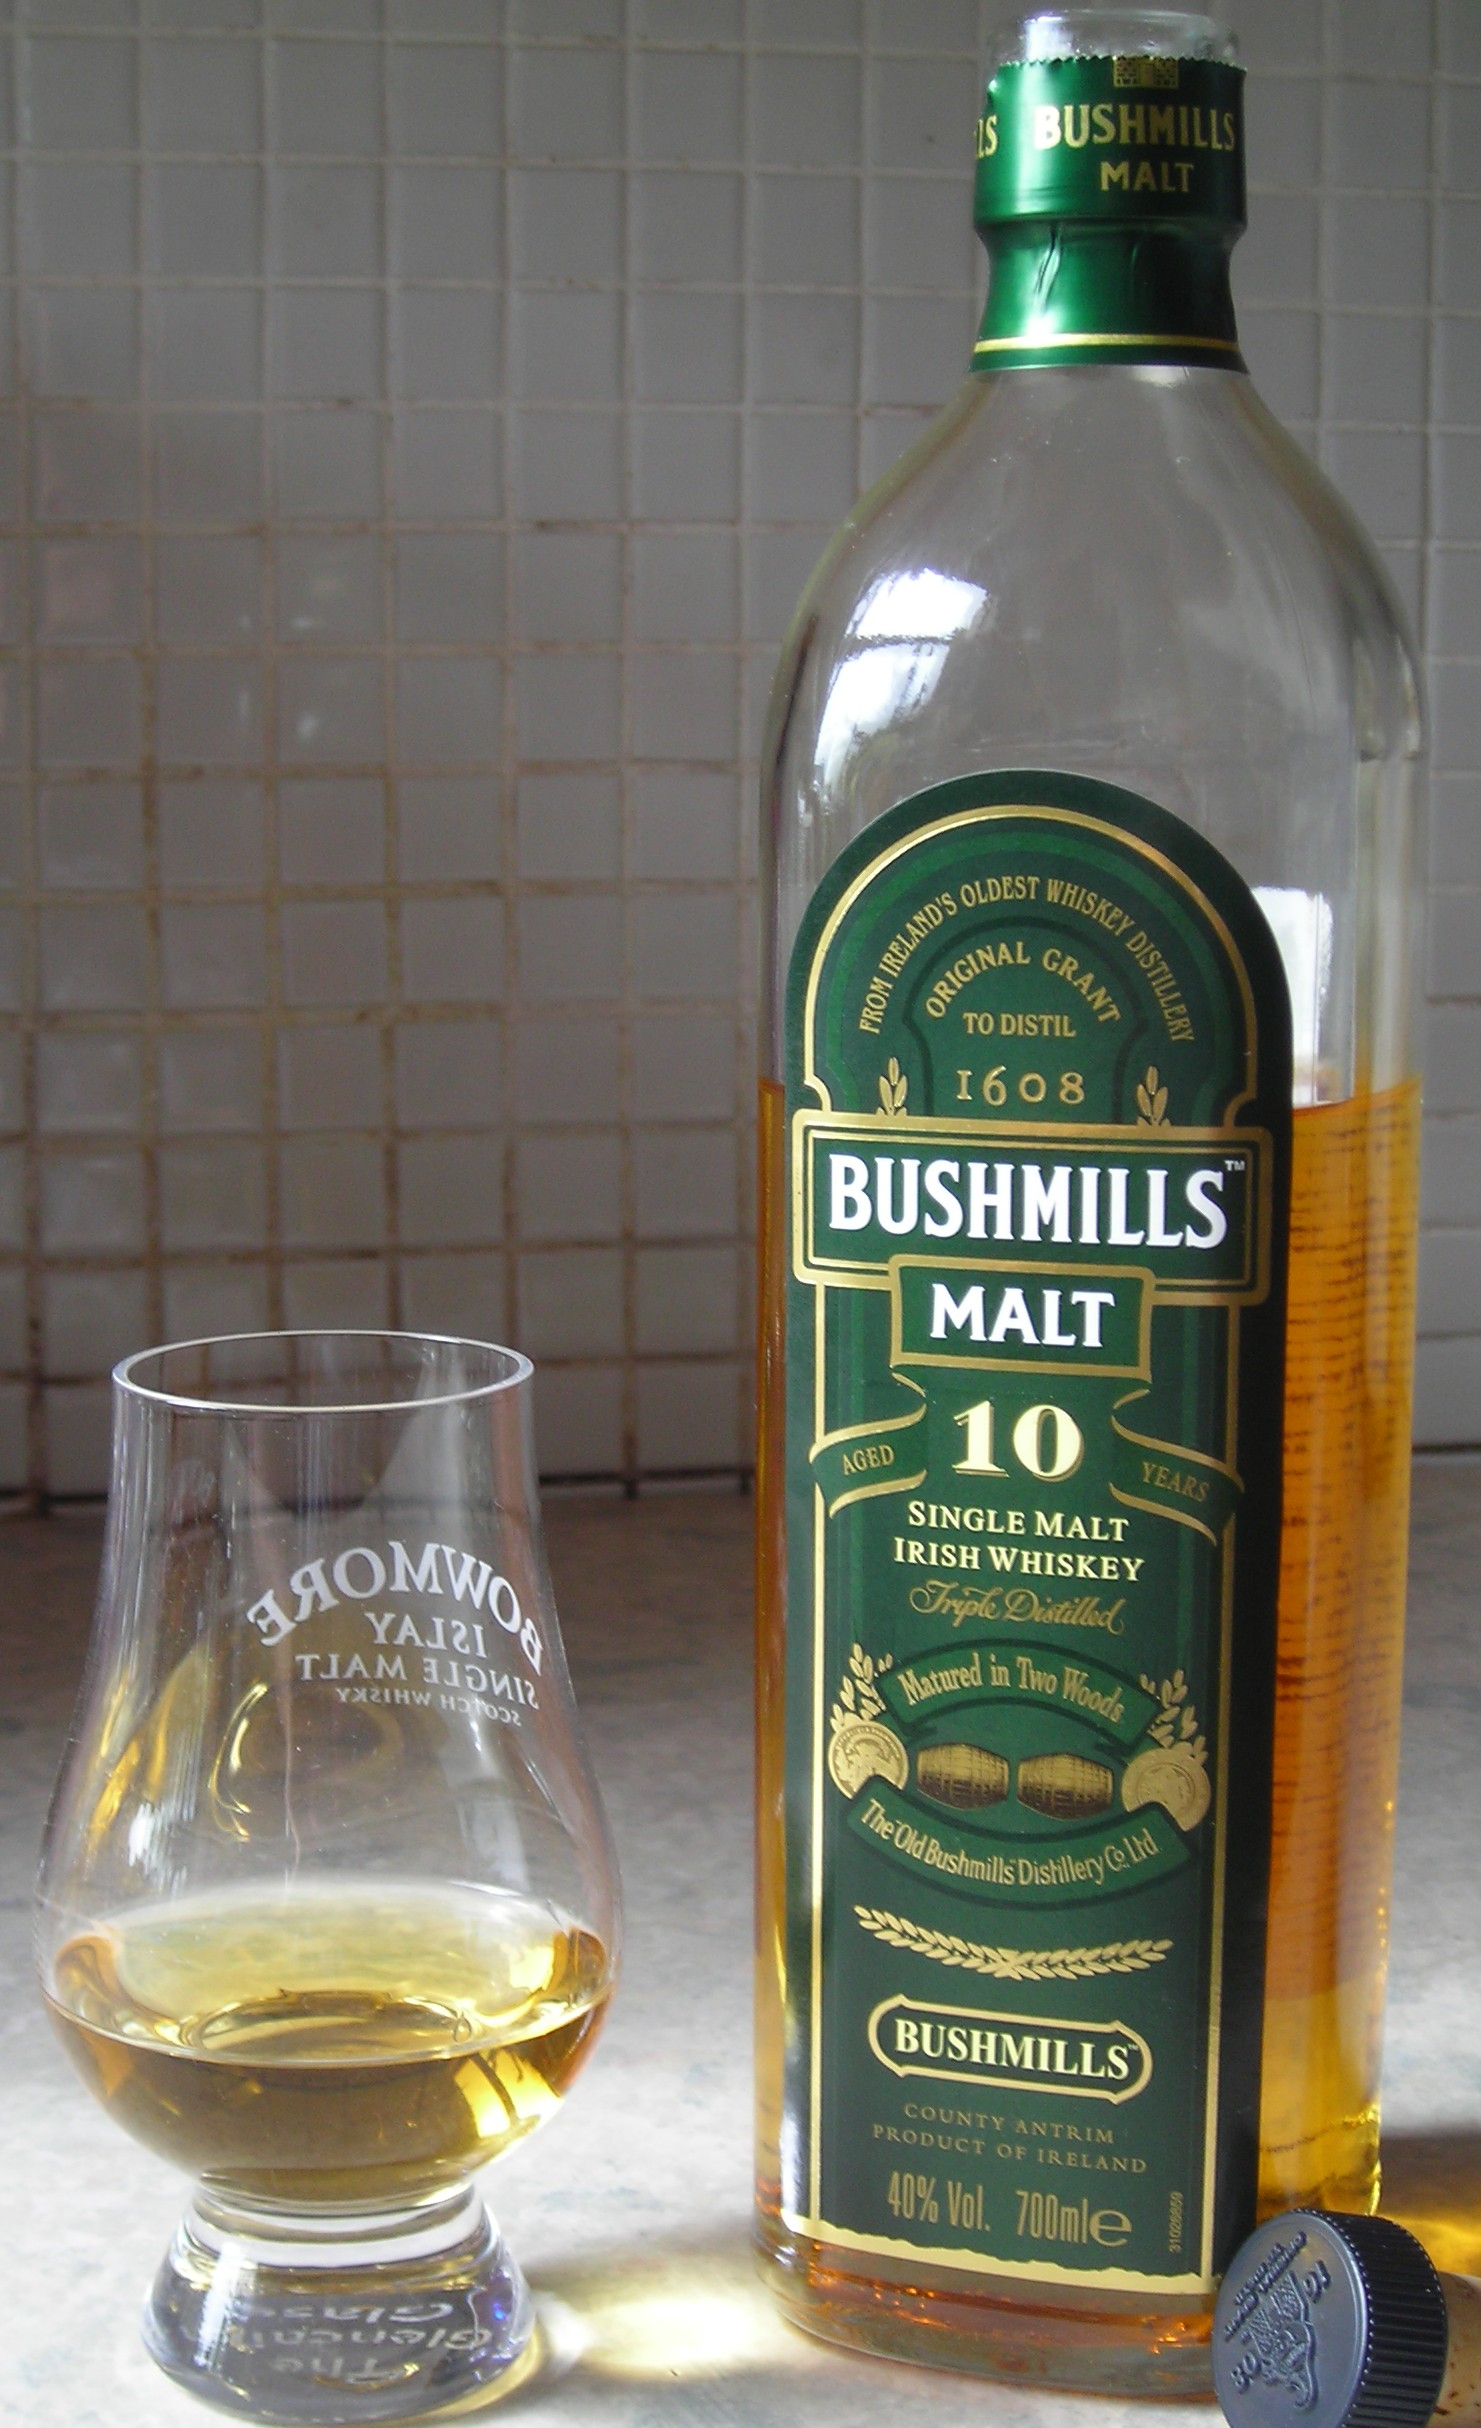 Bushmills 10 Year Old bottle and glass